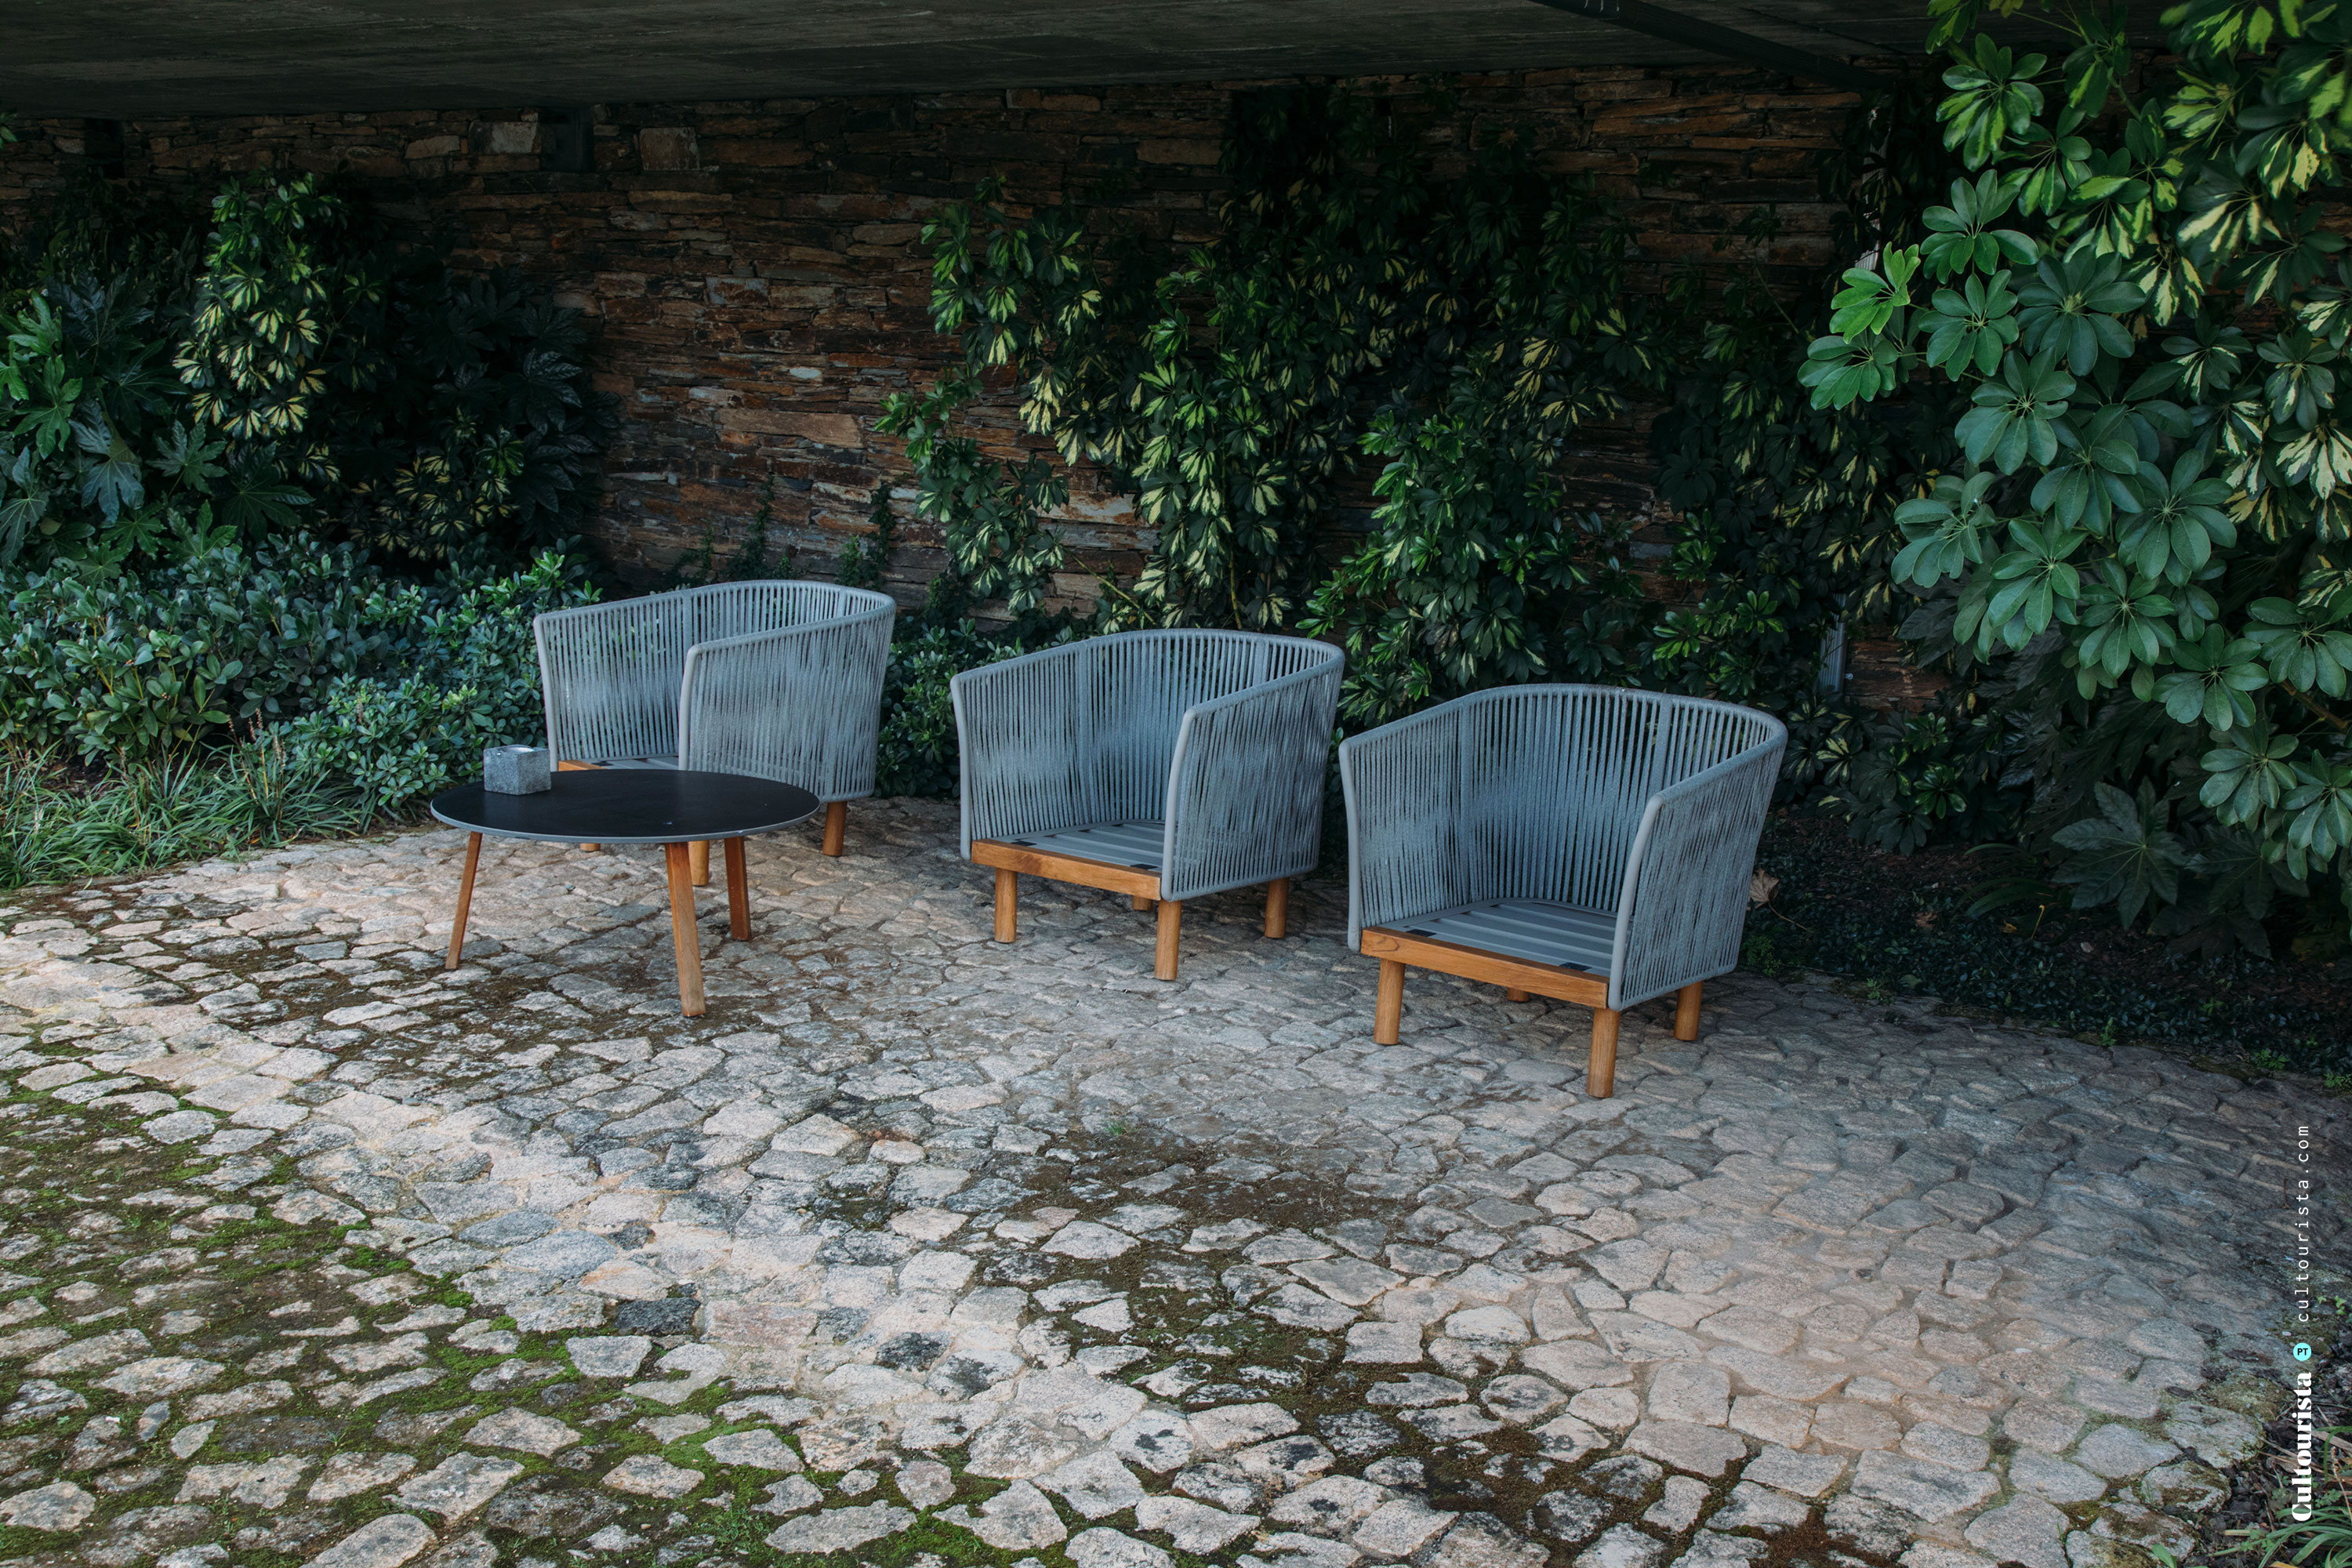 Chairs outside at the Hotel Douro41 Portugal